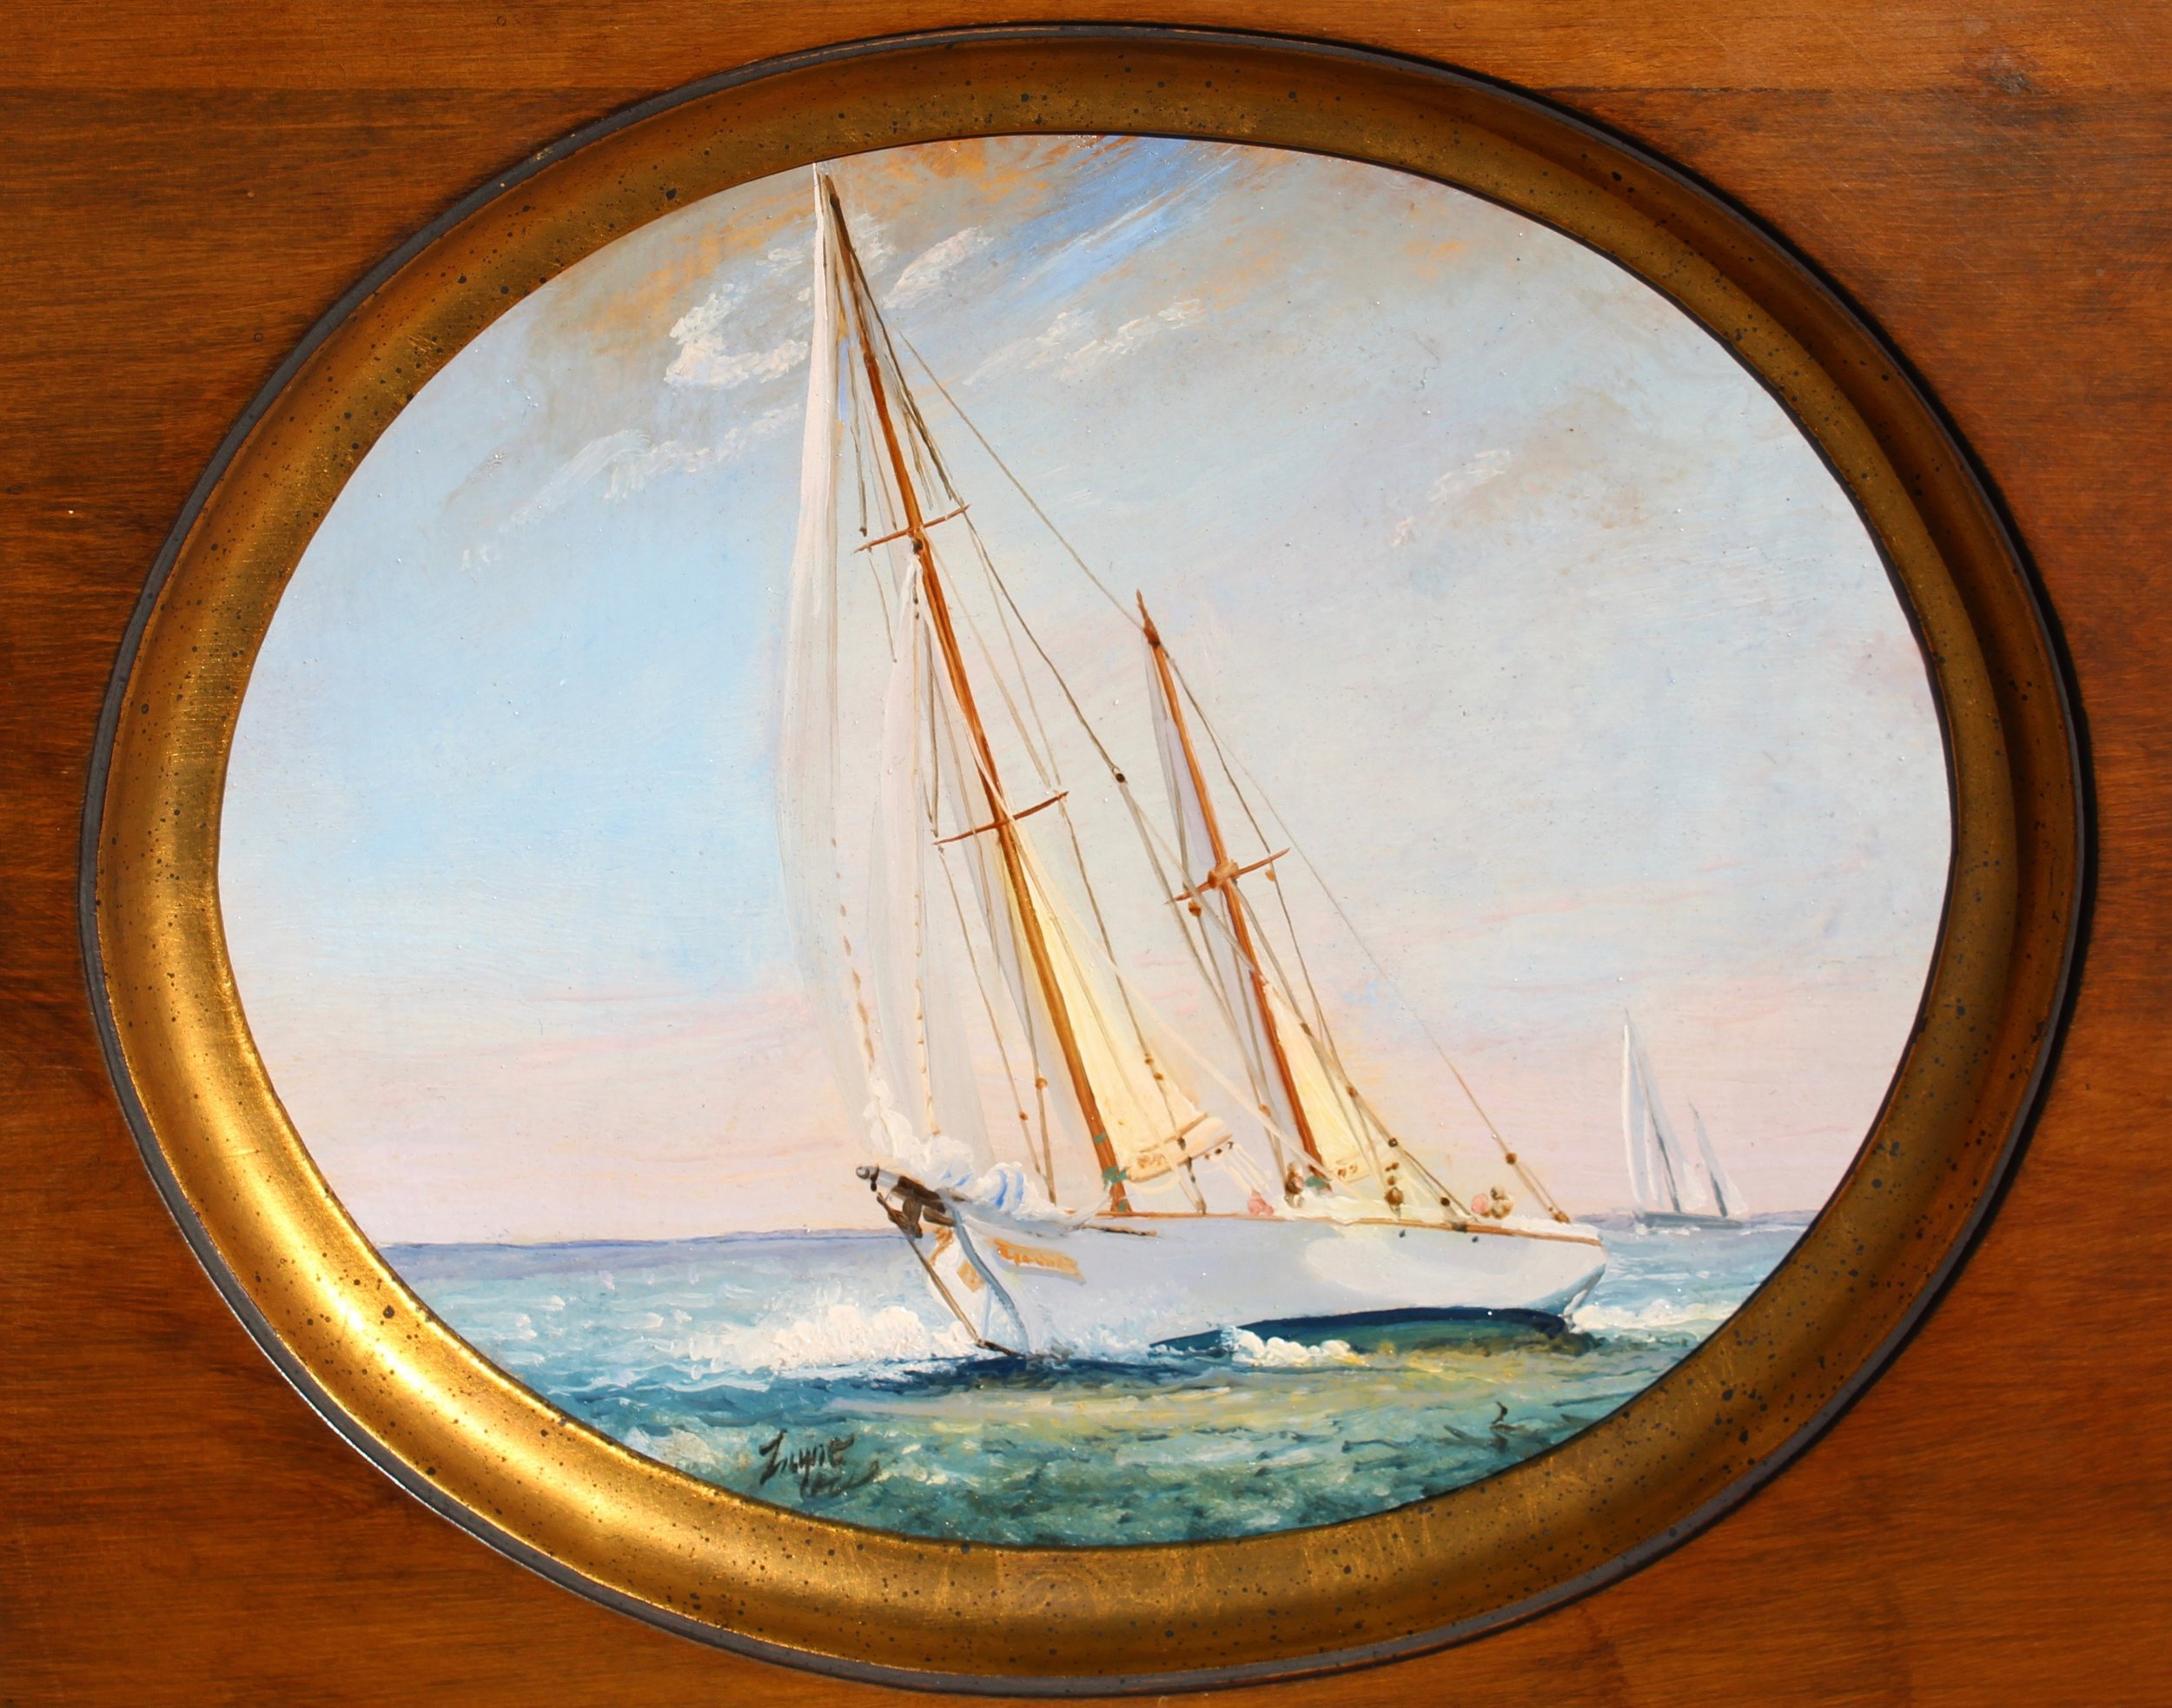 PETER ARGUIMBAU    Ticonderoga Close Hauled     Ticonderoga  is a legendary classic sailboat designed by L. Francis Herreshoff. The 72-foot clipper-bowed ketch was built by the Quincy Adams Yacht Yard in Massachusetts in 1936.  9 x 11 inches